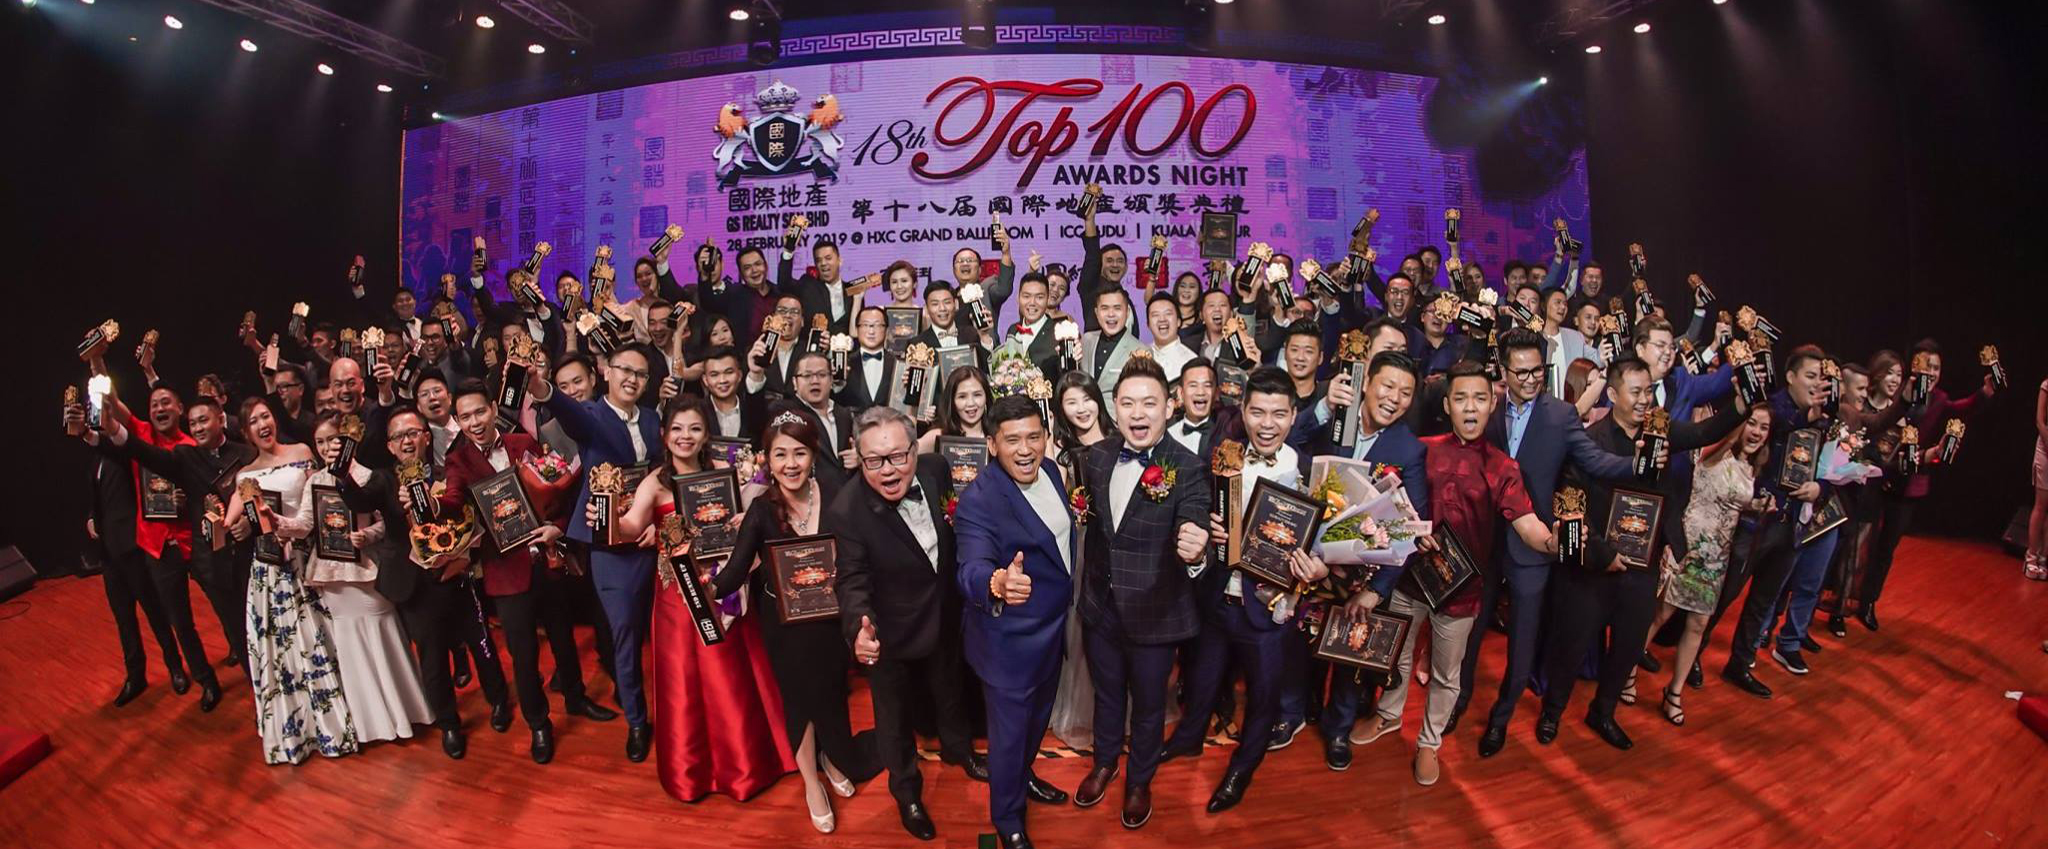 18th TOP100 Awards Night 2019